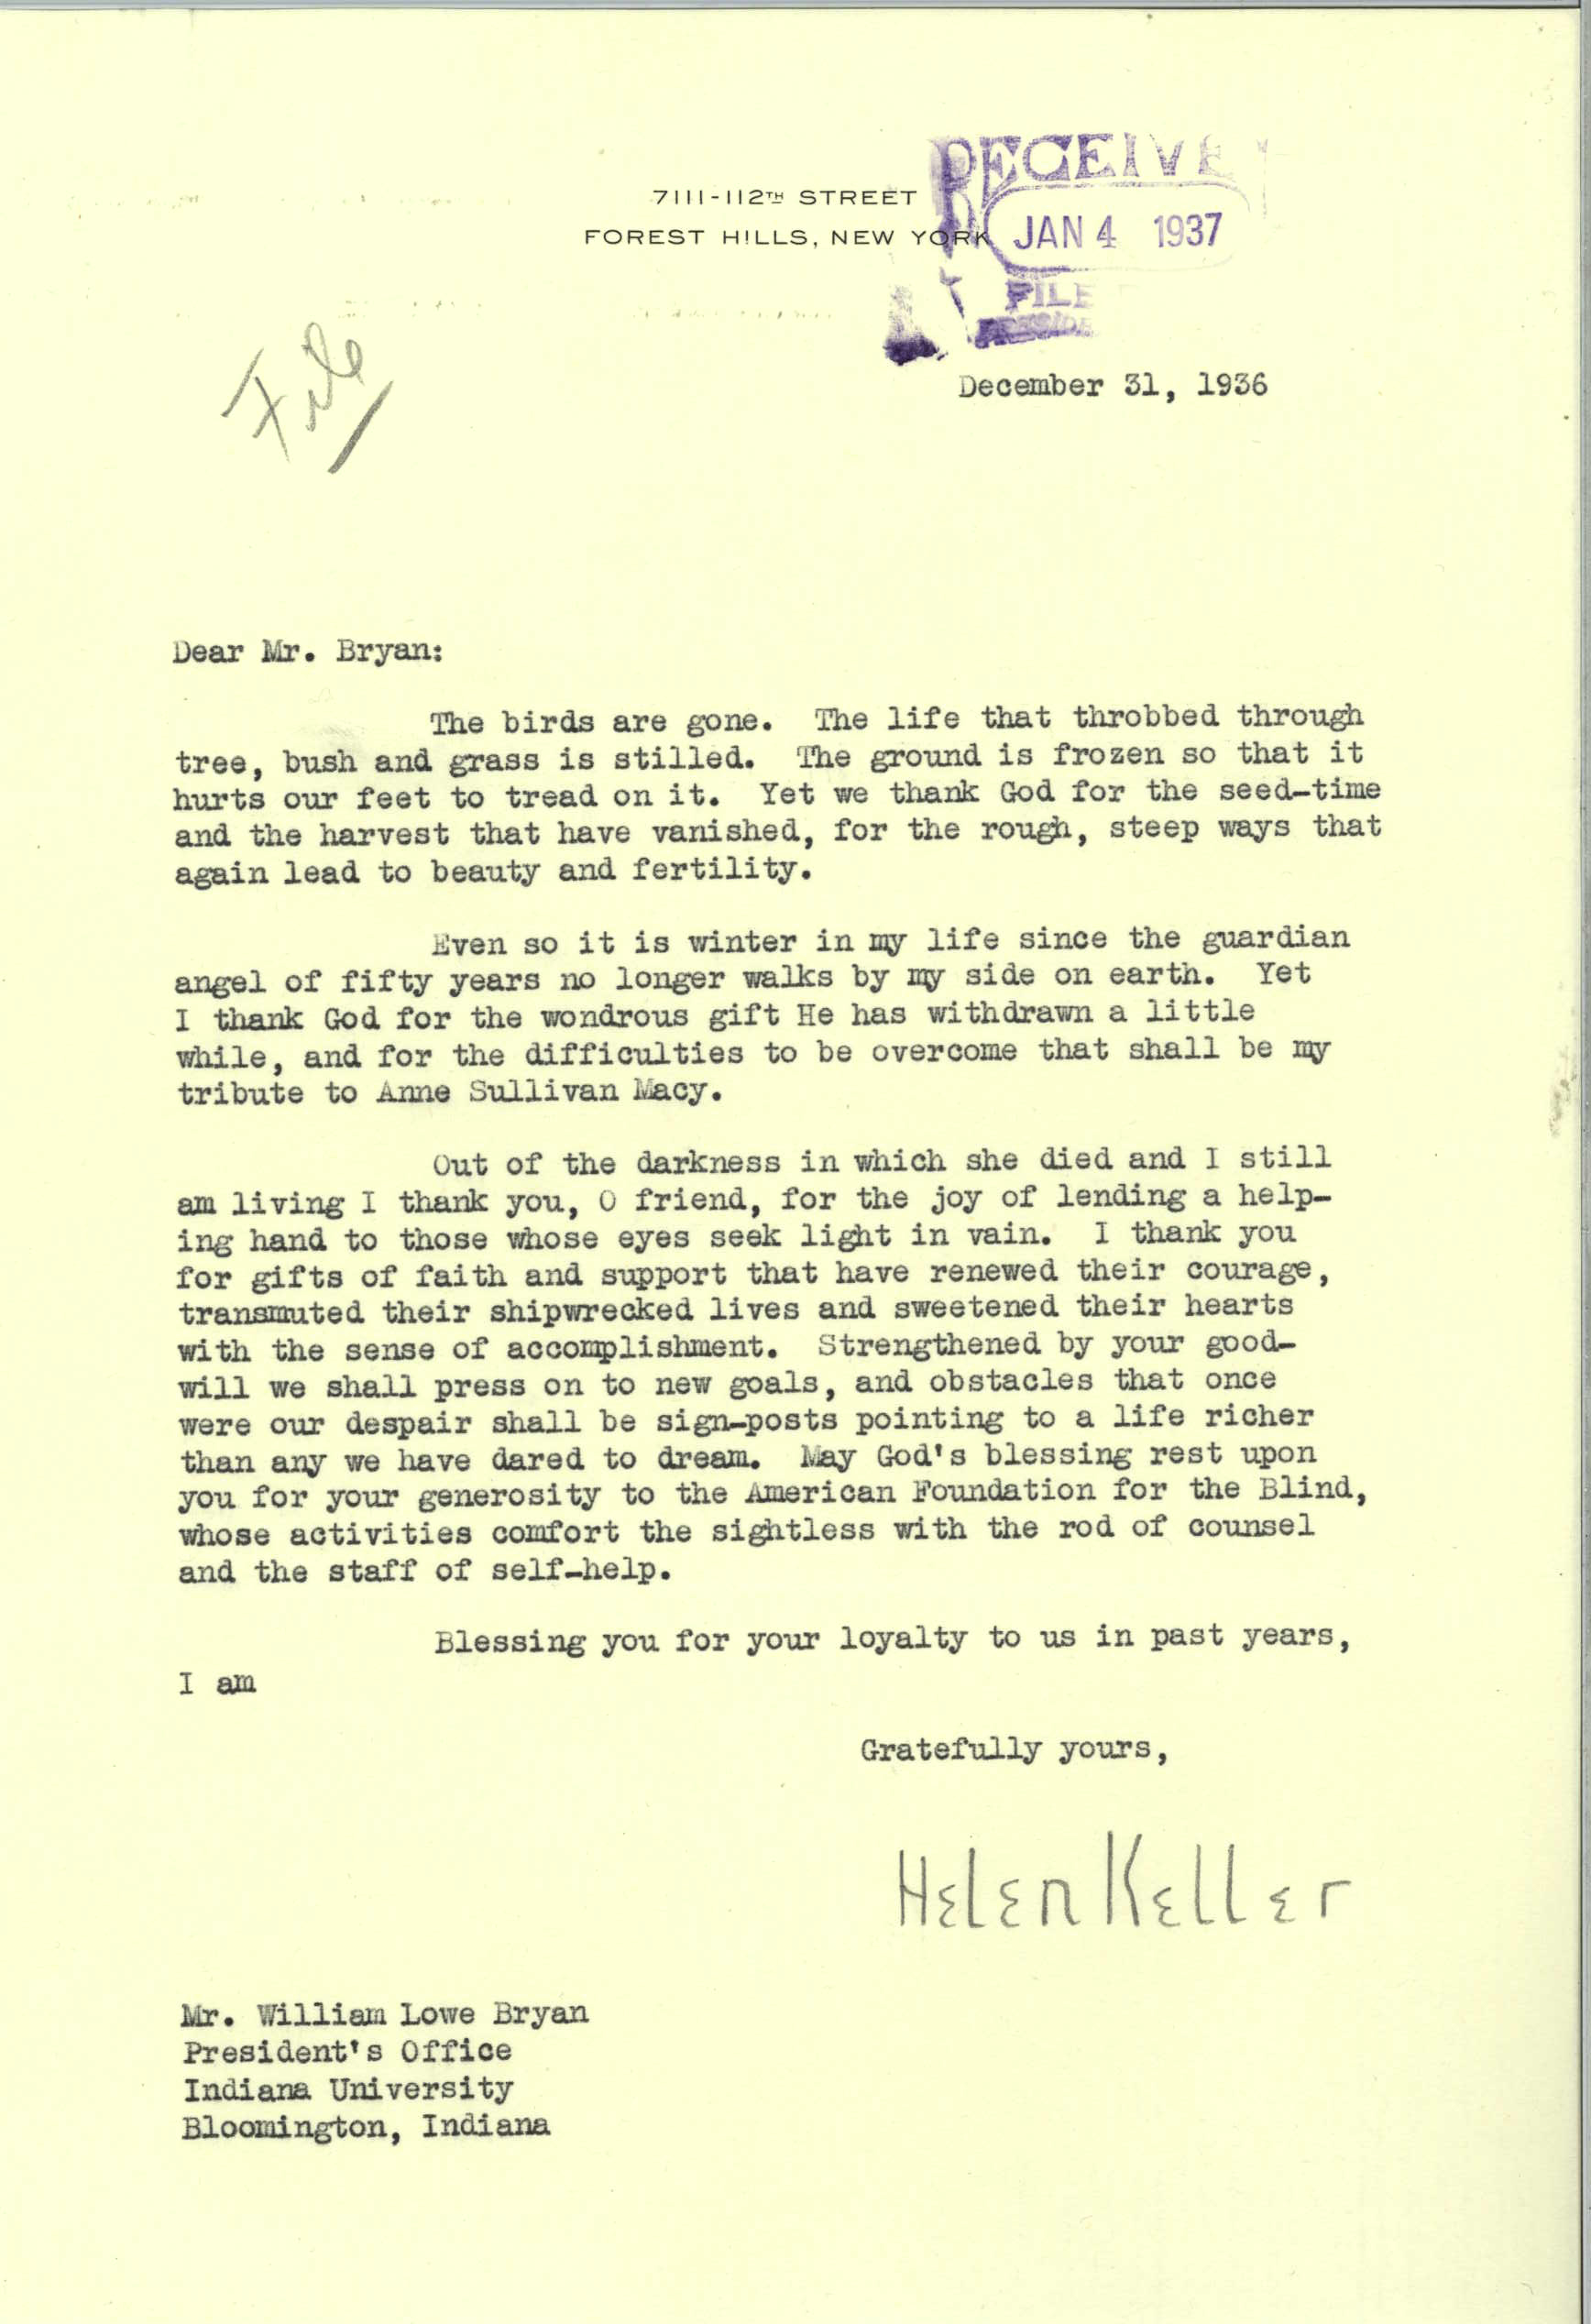 Helen Keller to William Lowe Bryan, December 31, 1936